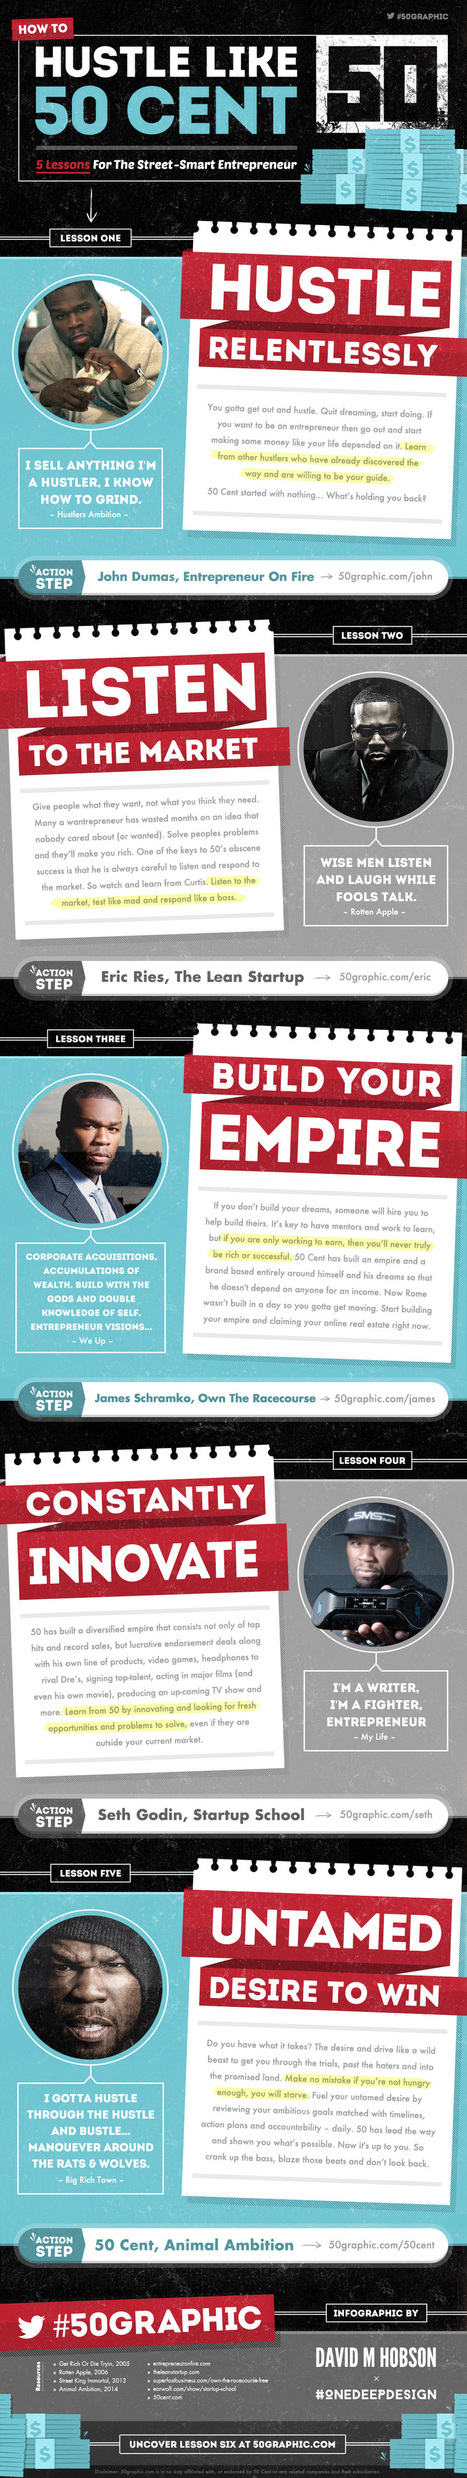 Building Your Empire The 50 Cent Way #50Graphic | SOCIAL MEDIA ECOSYSTEM | Scoop.it